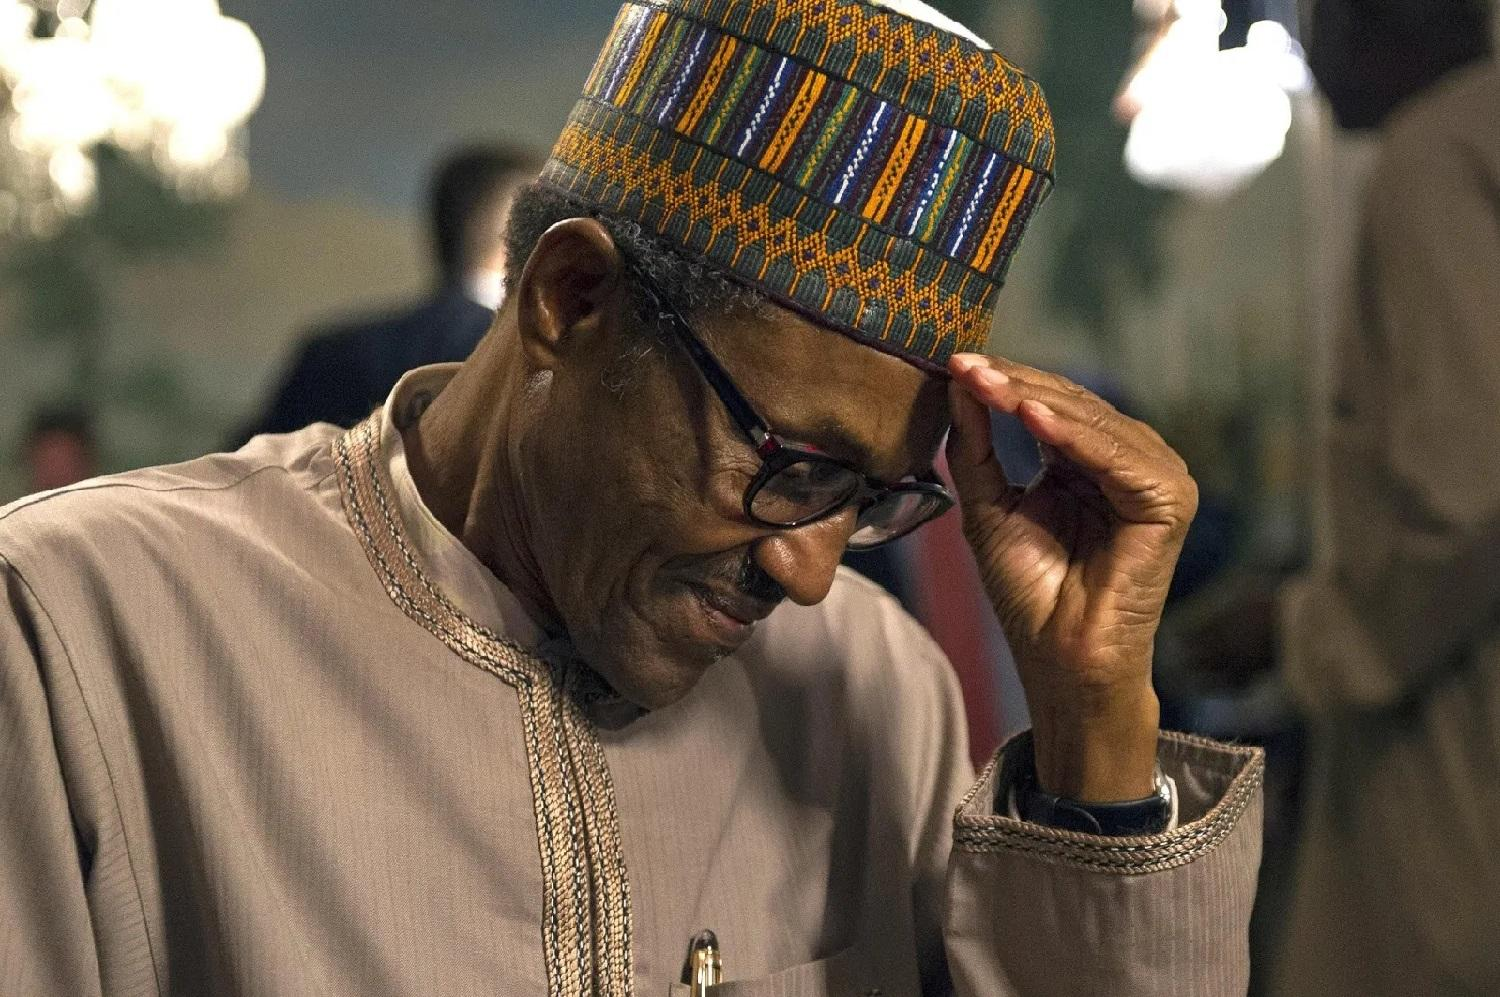 Twitter reacts to Nigerian government's ban of its app